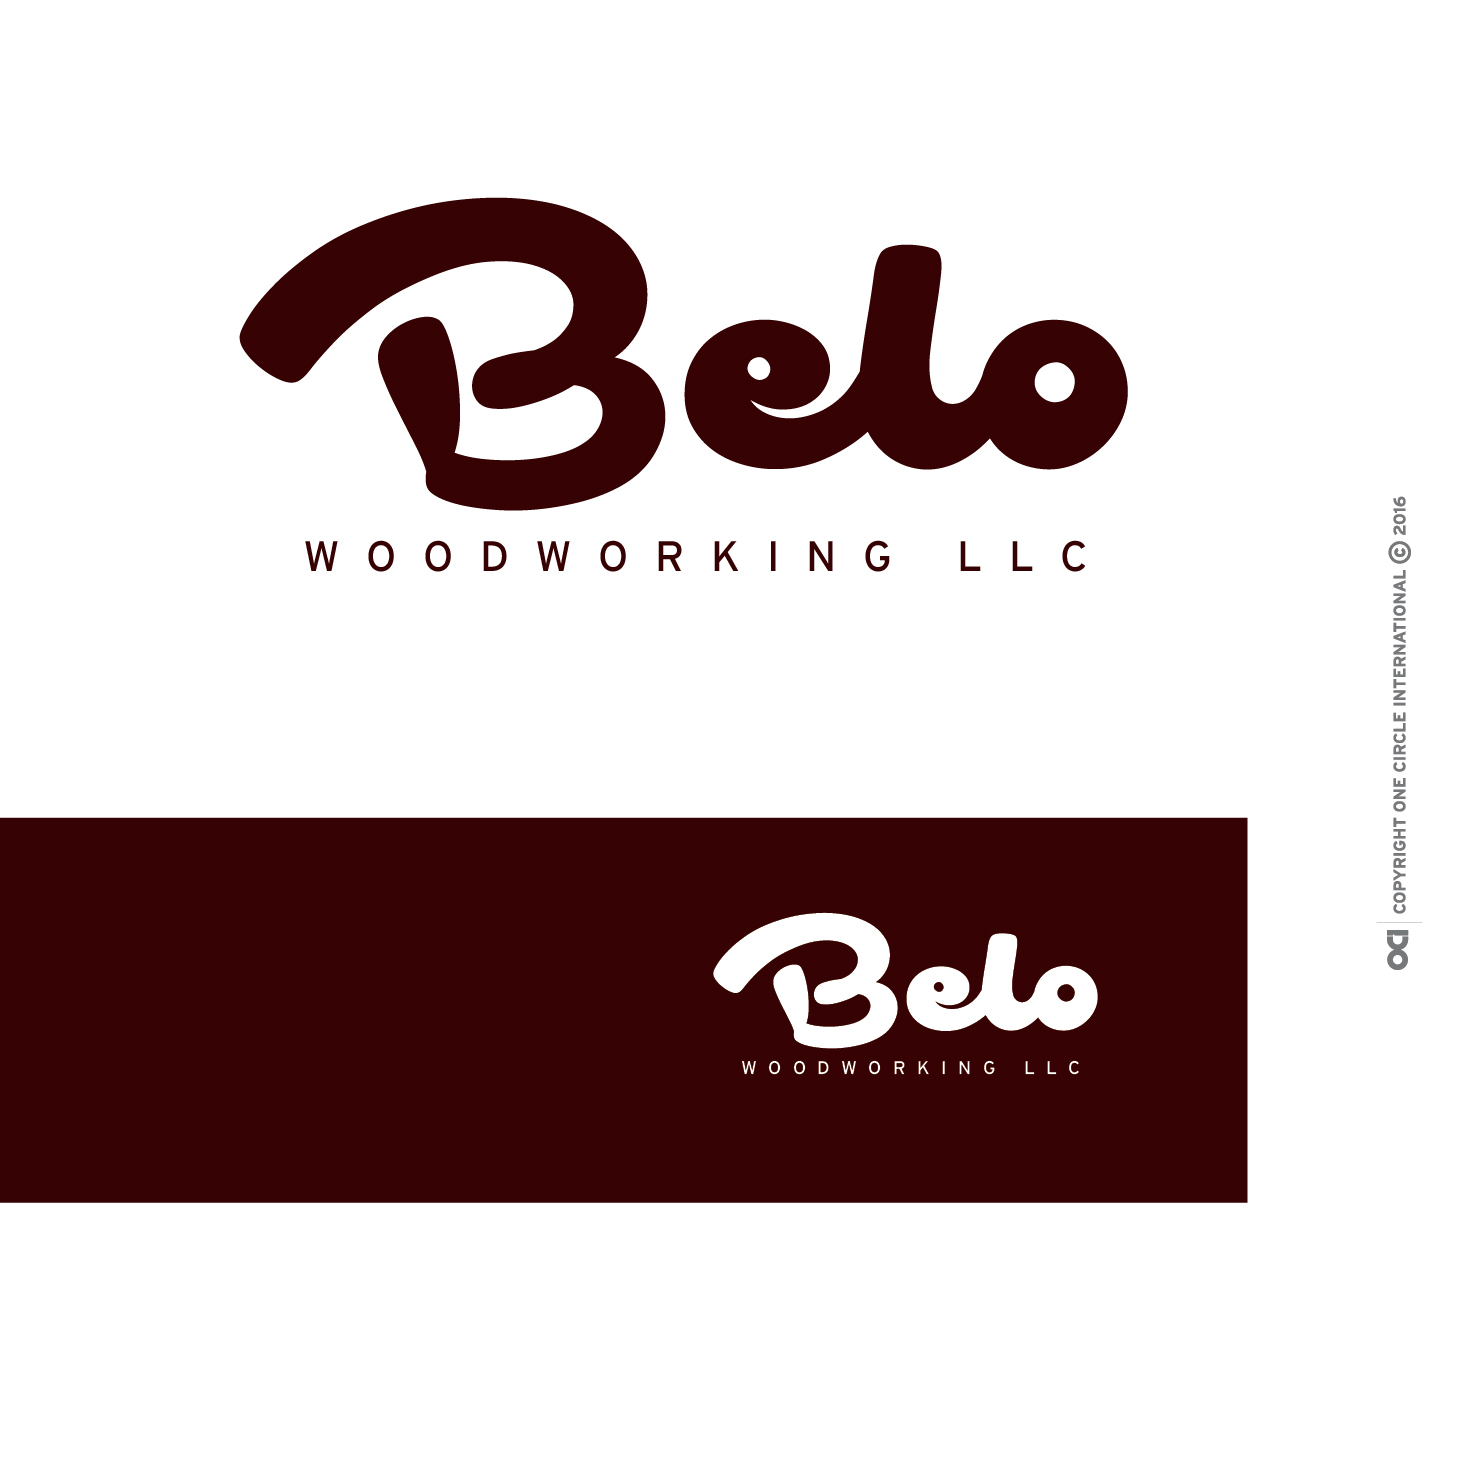 Elegant Serious It Company Logo Design For Belo Woodworking By Amal Ma Ani Design 13278032